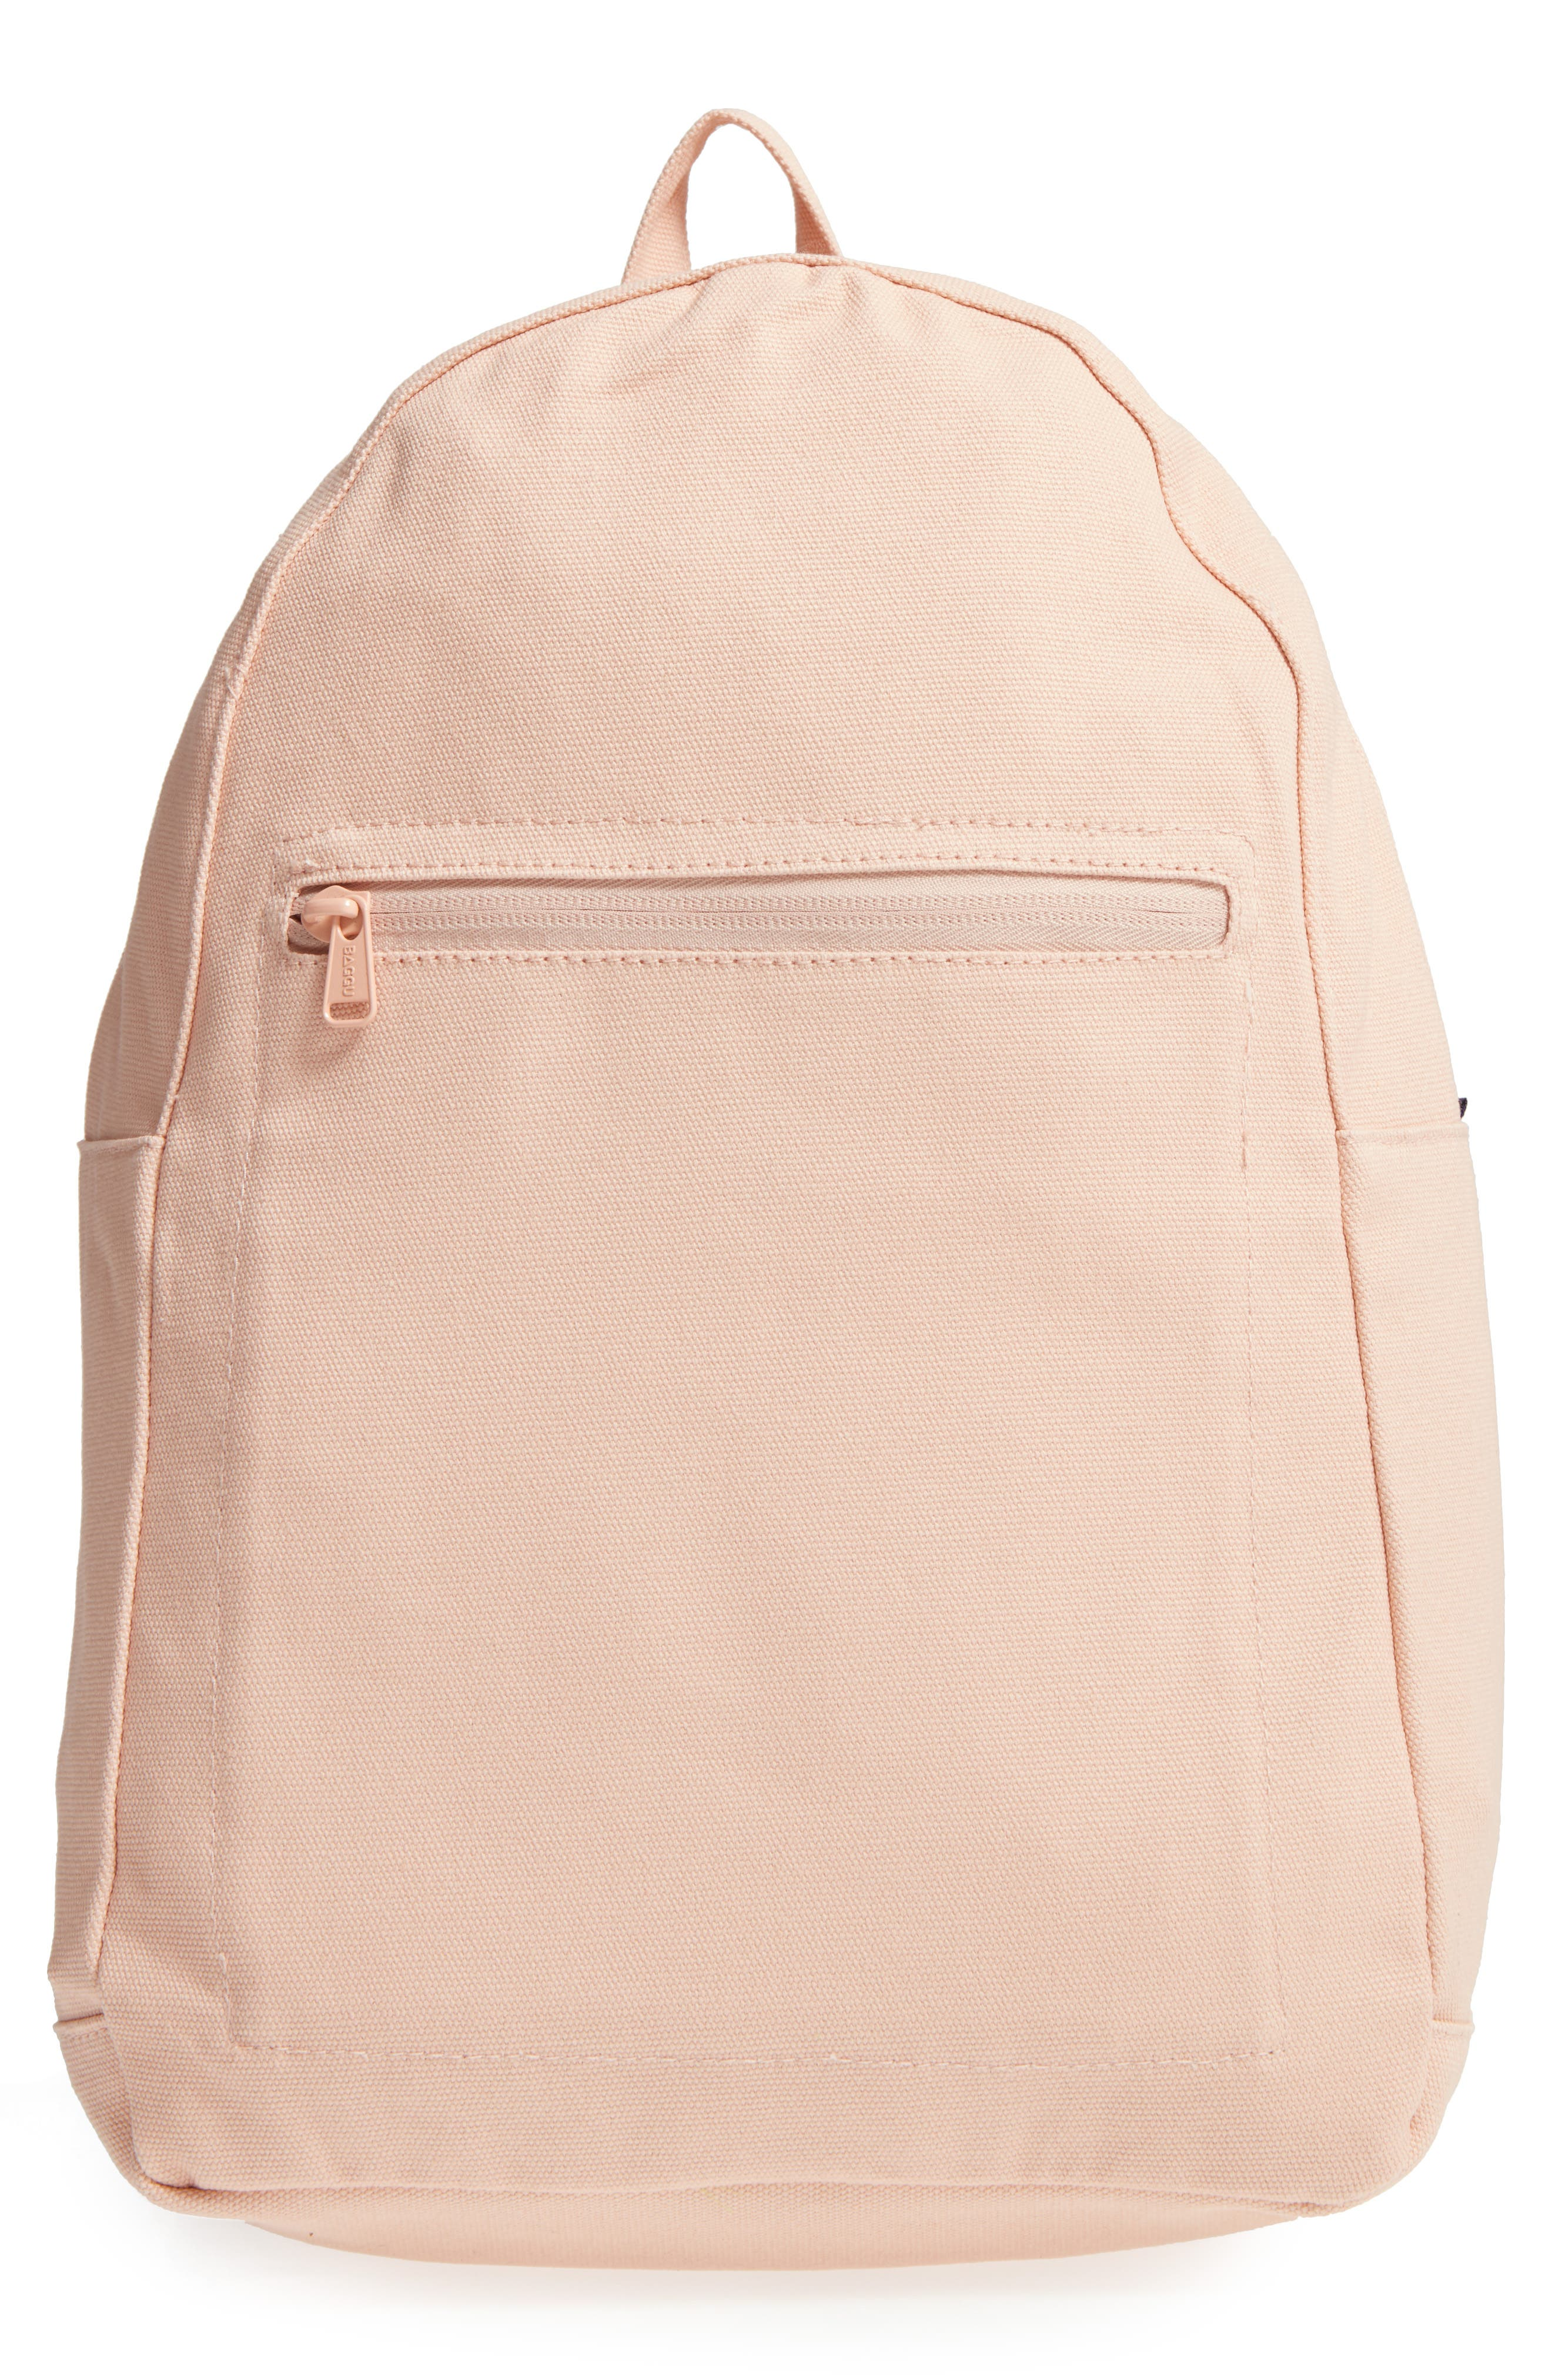 Canvas Backpack,                         Main,                         color, Shell